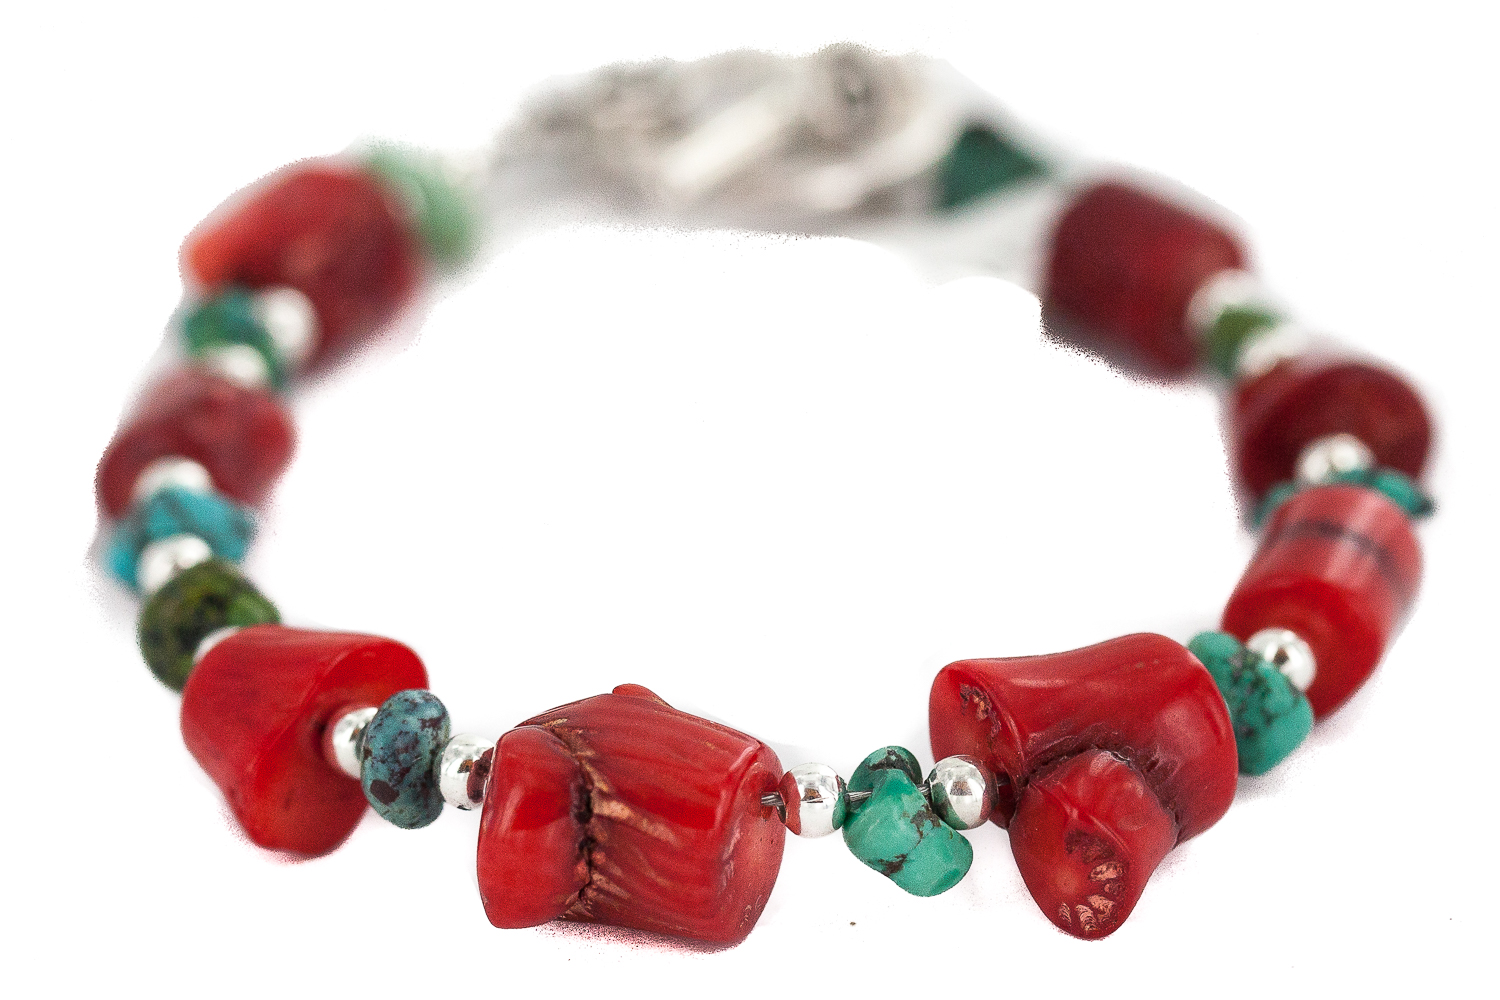 90 Retail Tag Navajo Nickel Made by Charlene Little Authentic Natural Turquoise Coral Native American Bracelet by